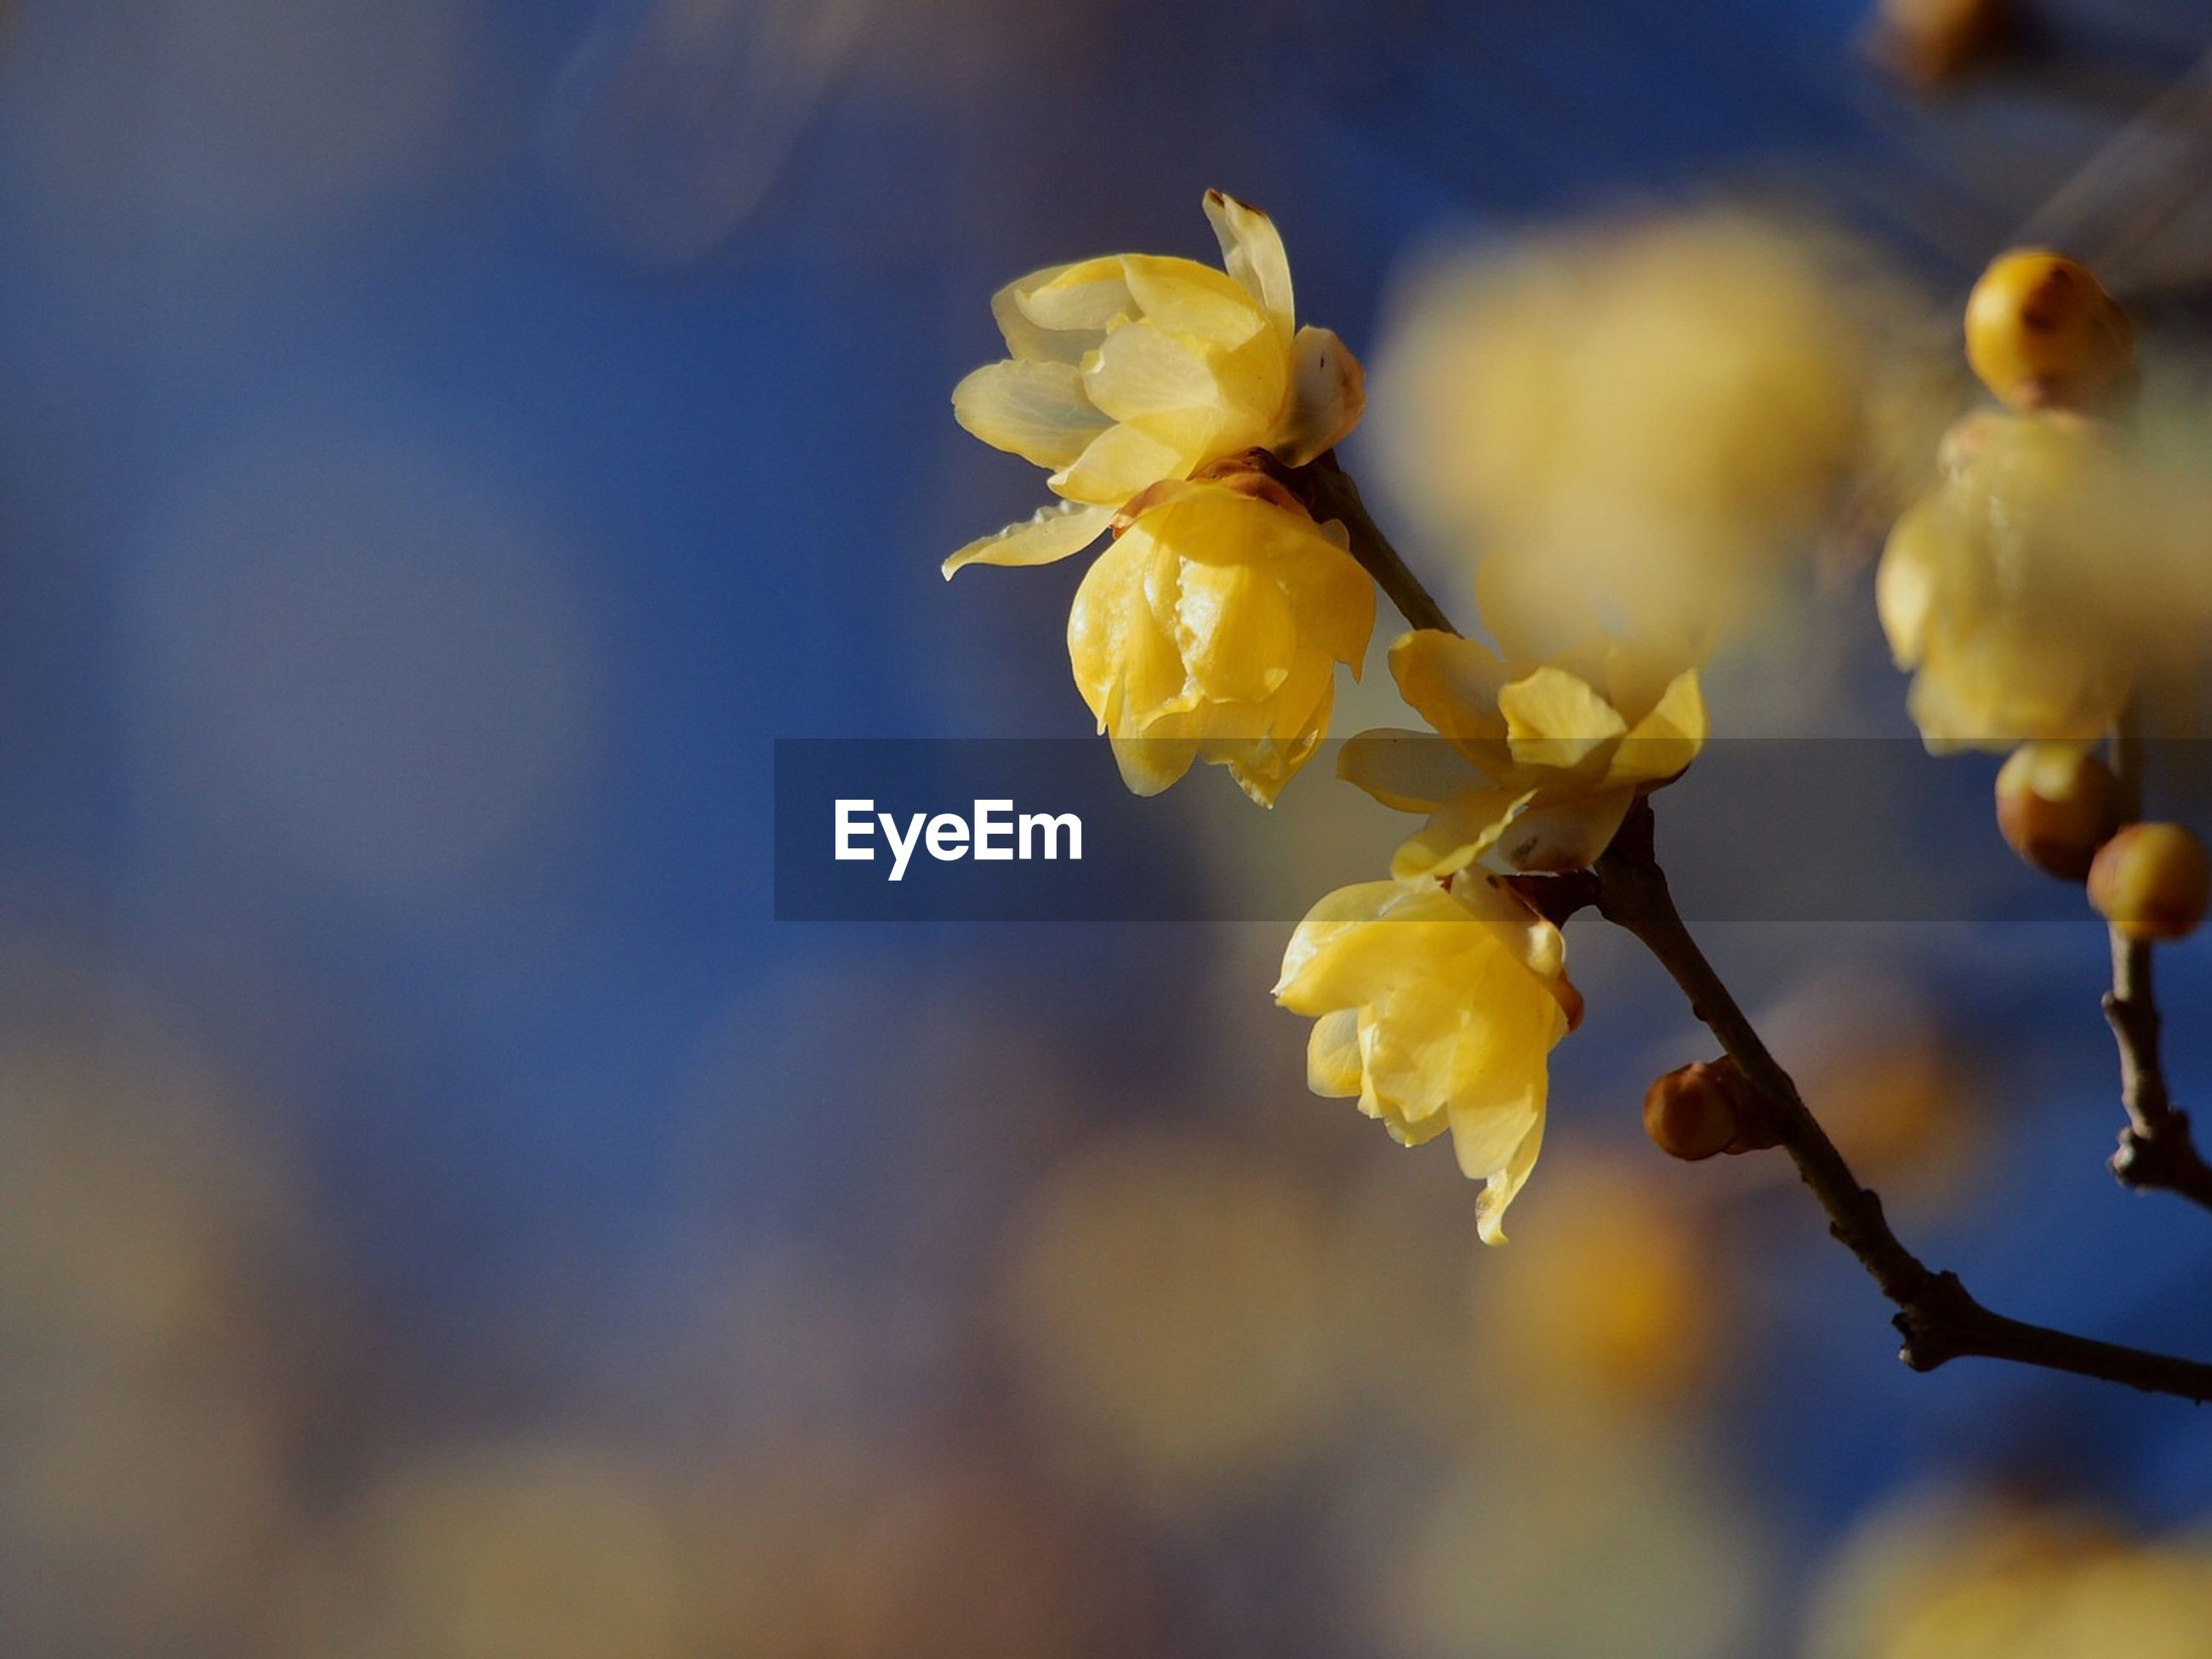 flower, fragility, nature, beauty in nature, yellow, petal, growth, outdoors, no people, freshness, day, close-up, flower head, plant, blooming, sky